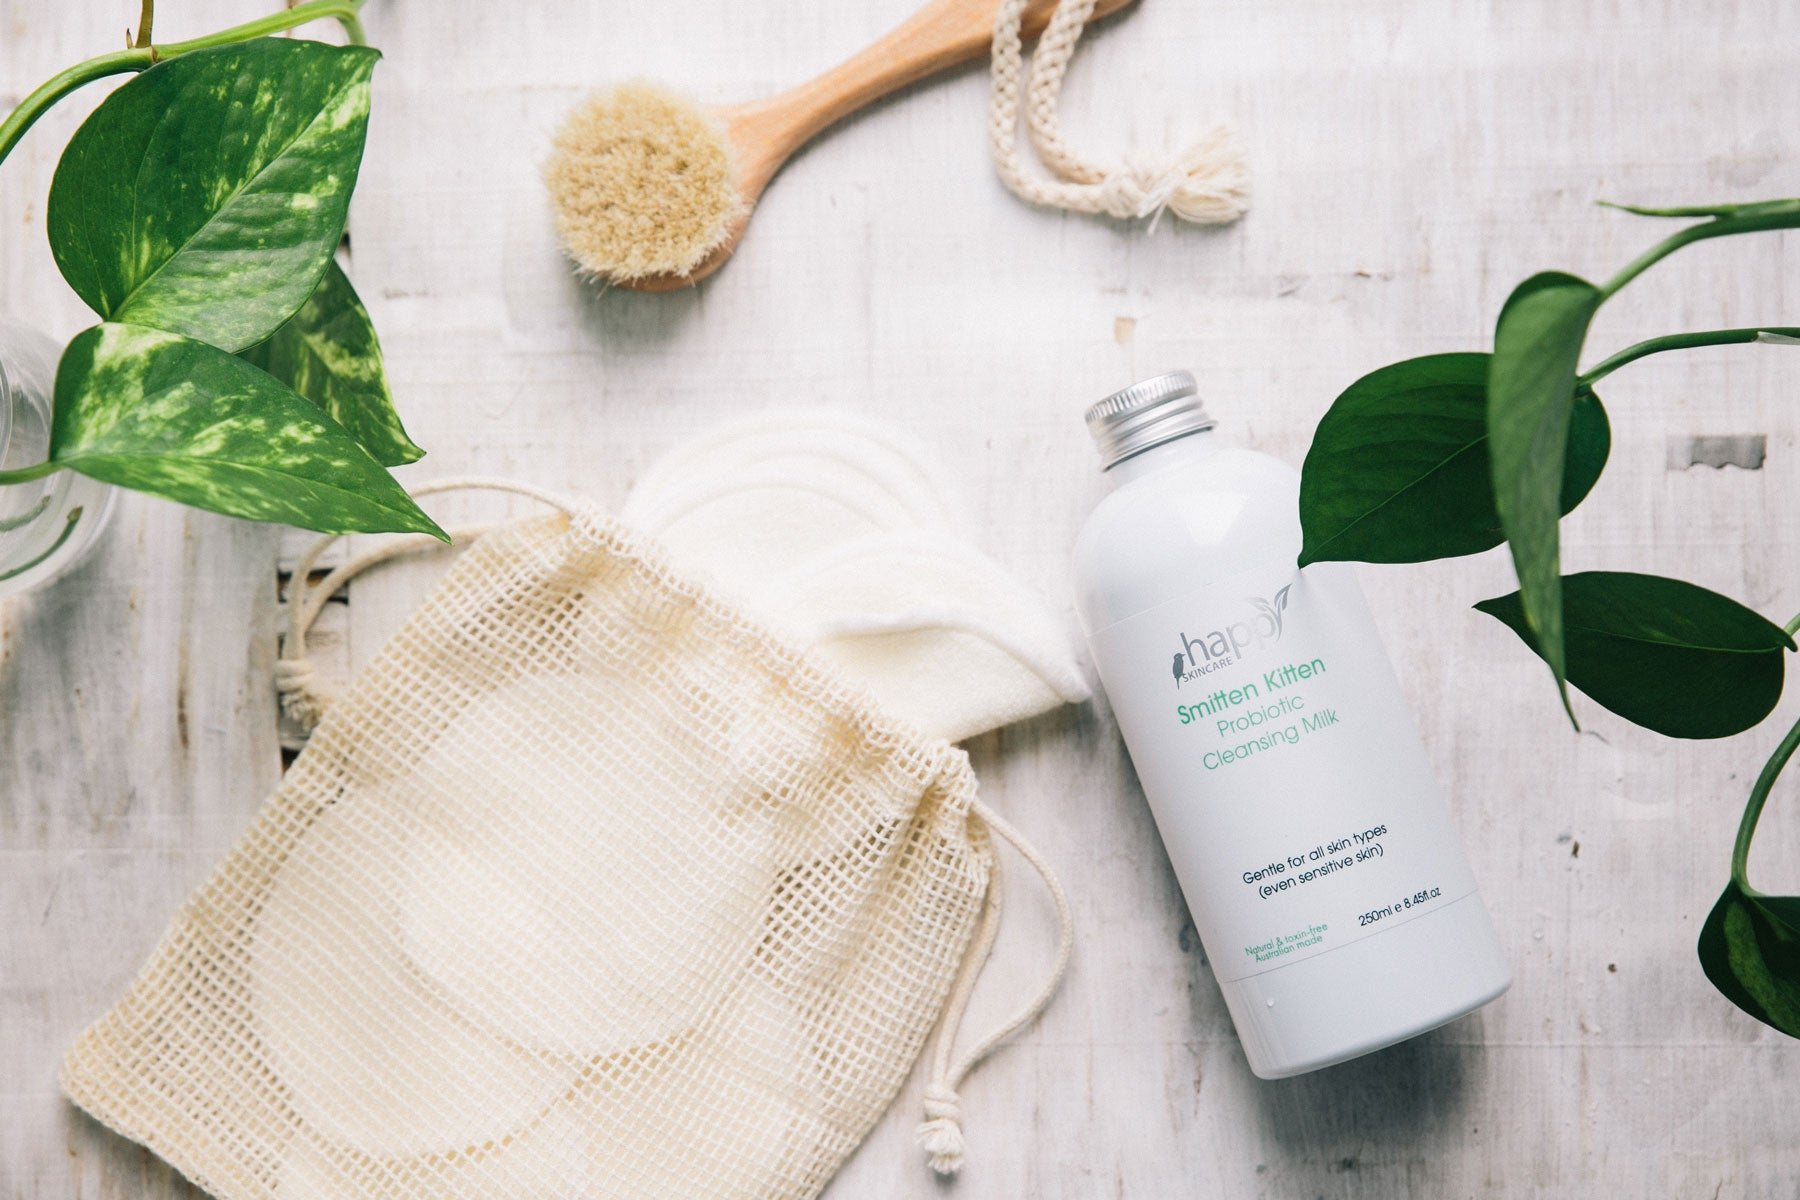 How to use your 'Smitten Kitten' Probiotic Cleansing Milk